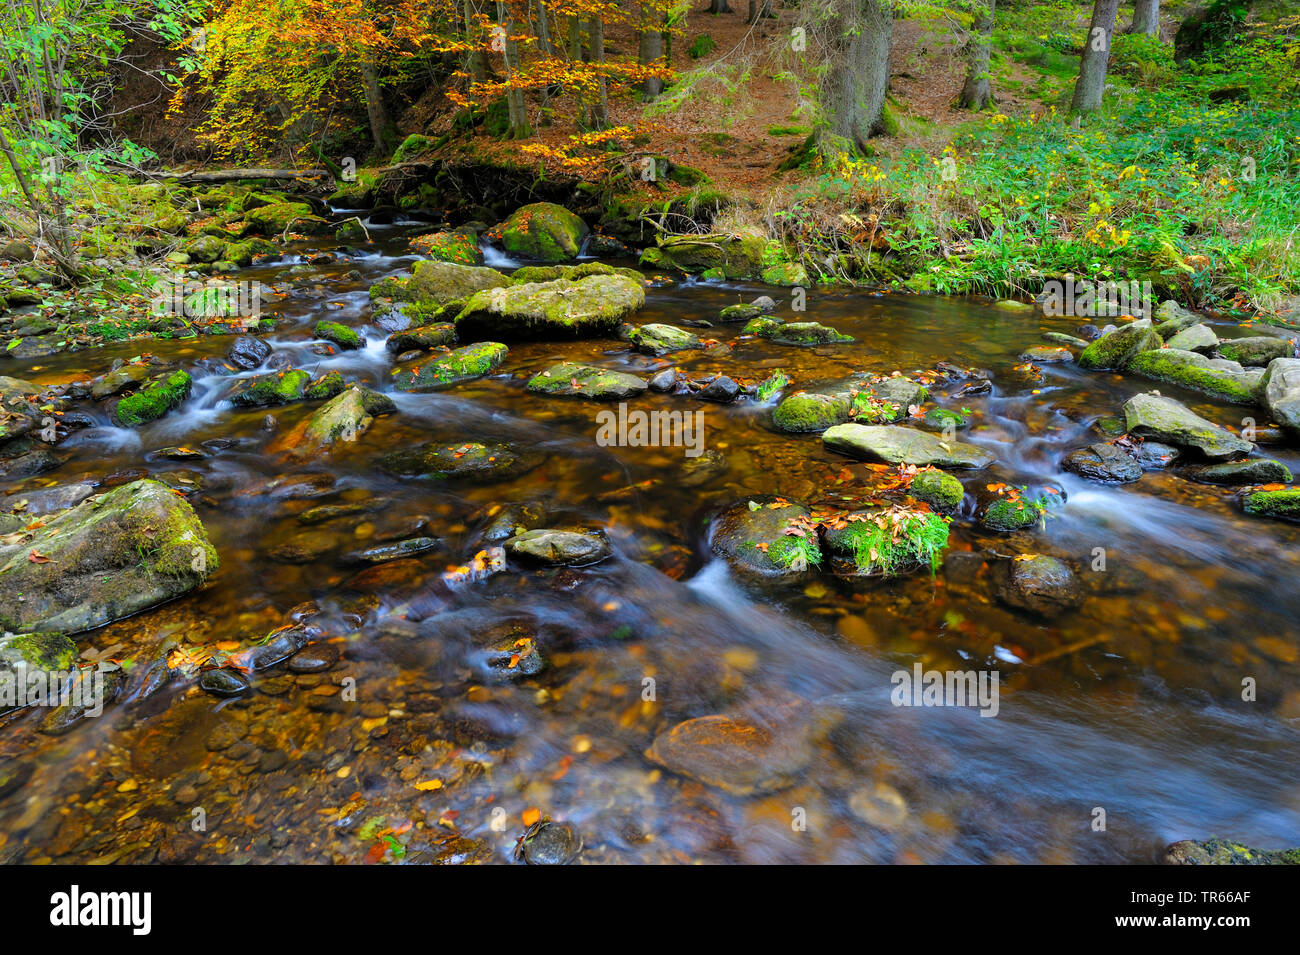 Steinklamm gorge with Grosse Ohe river in autumn, Germany, Bavaria, Bavarian Forest National Park, Spiegelau - Stock Image